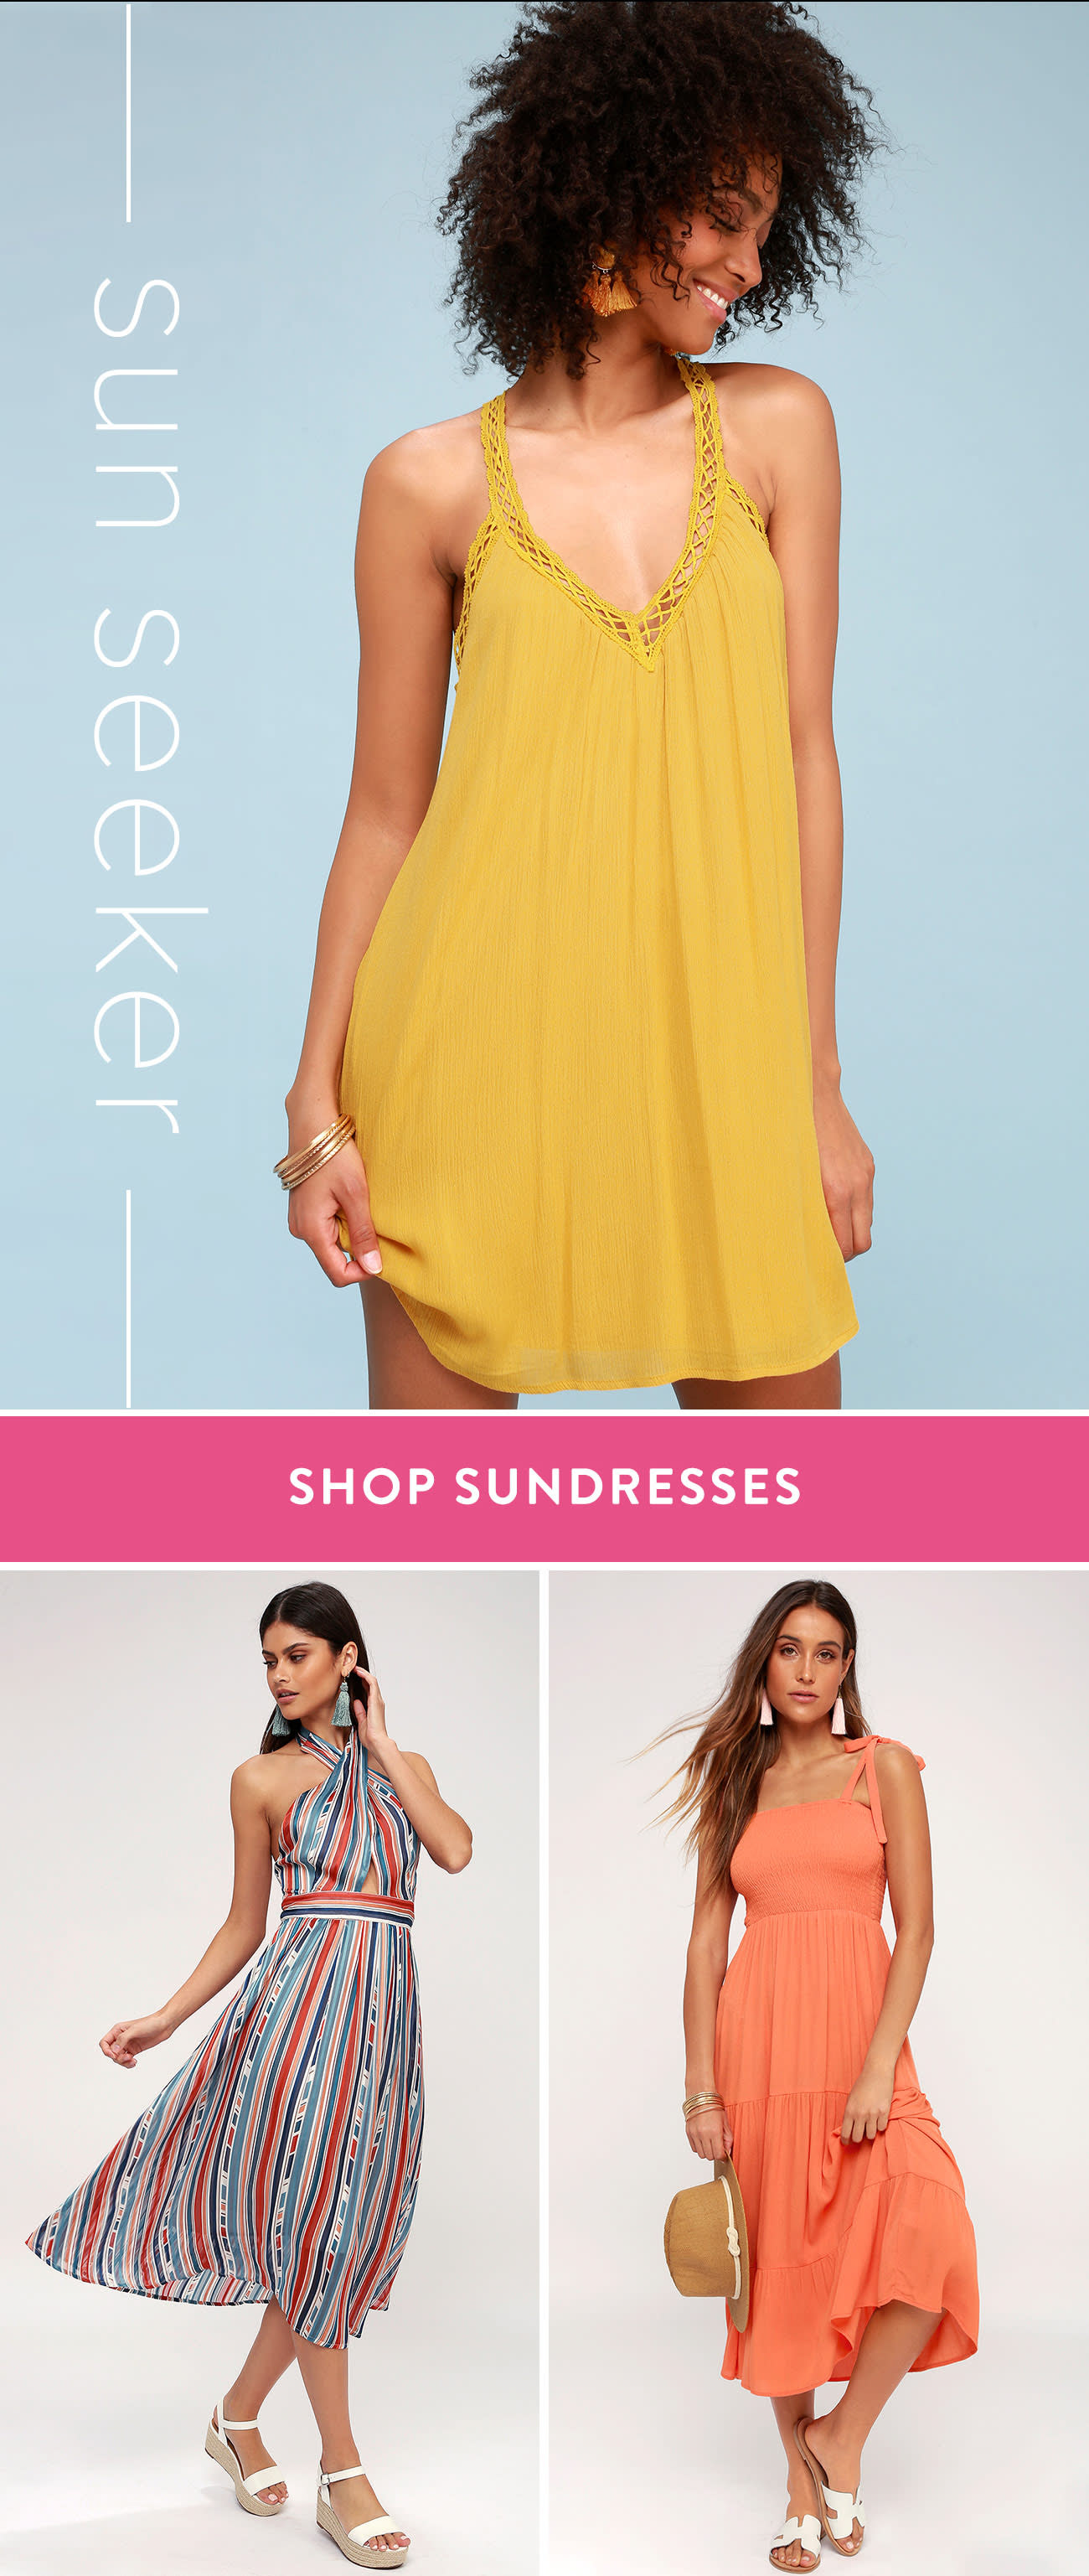 Sun Skeeer- Shop Sundresses!